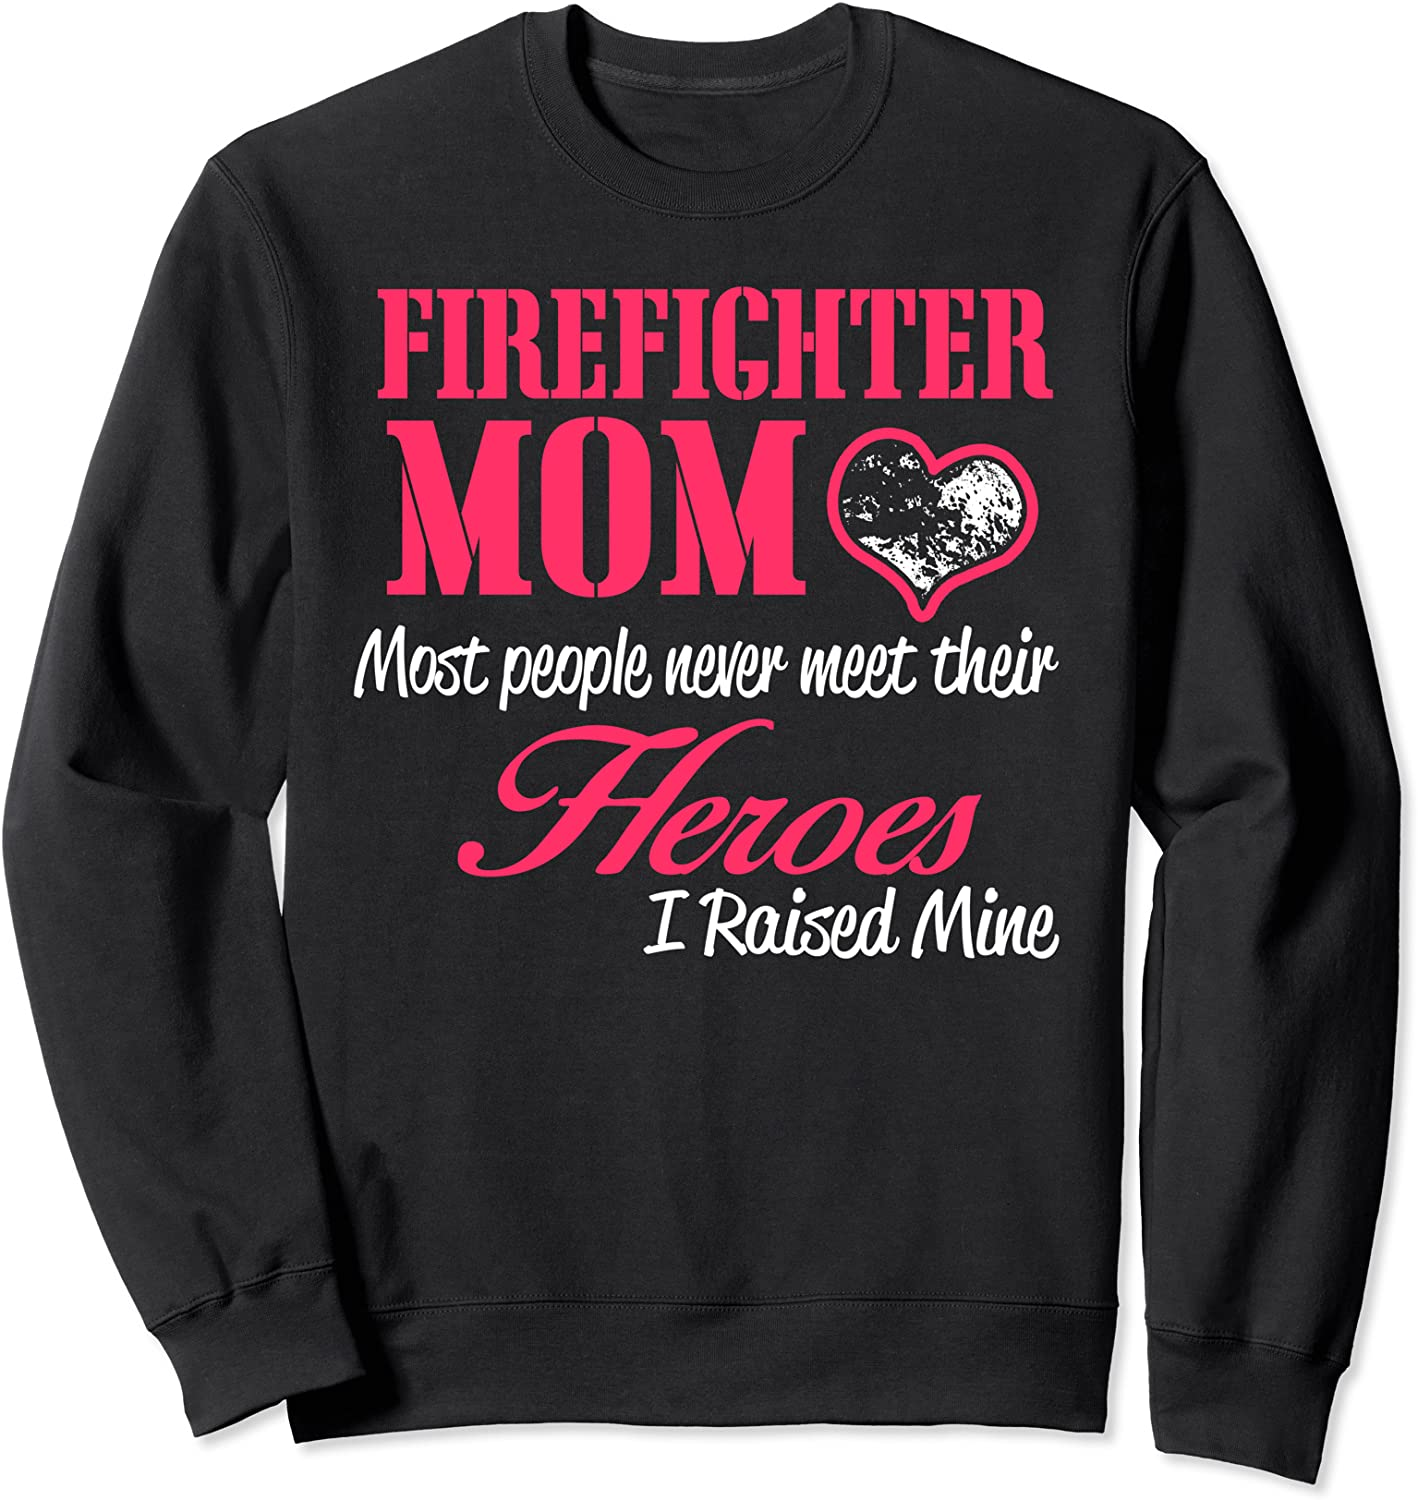 Firefighter Mom Proud Firefighter Mom Most people Never Get To Meet Their Heros,I RAISED MINE My Hero Firefighter Gift,Firefighter Gift